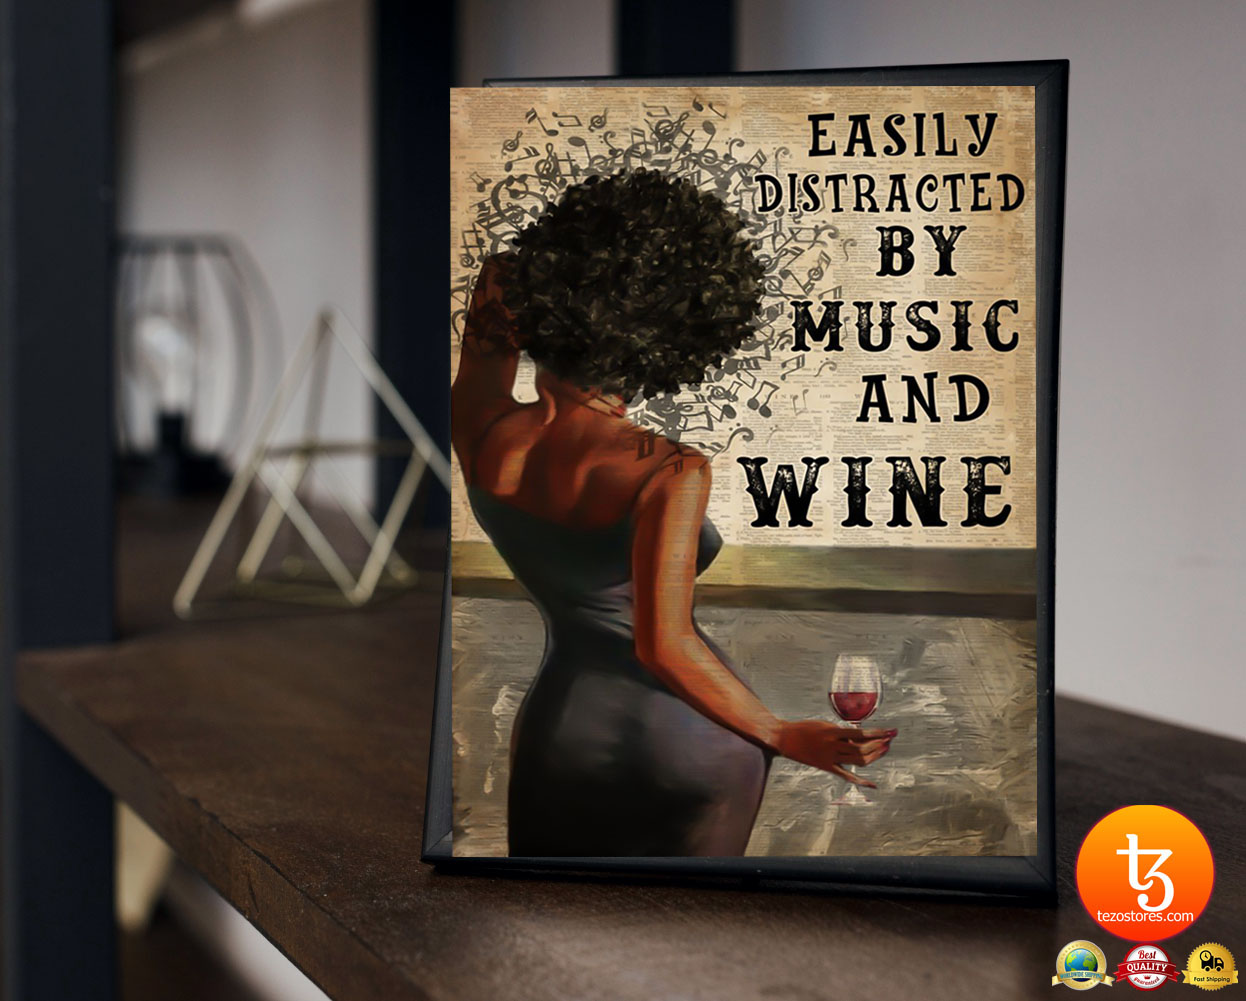 Easily distracted by music and wine poster